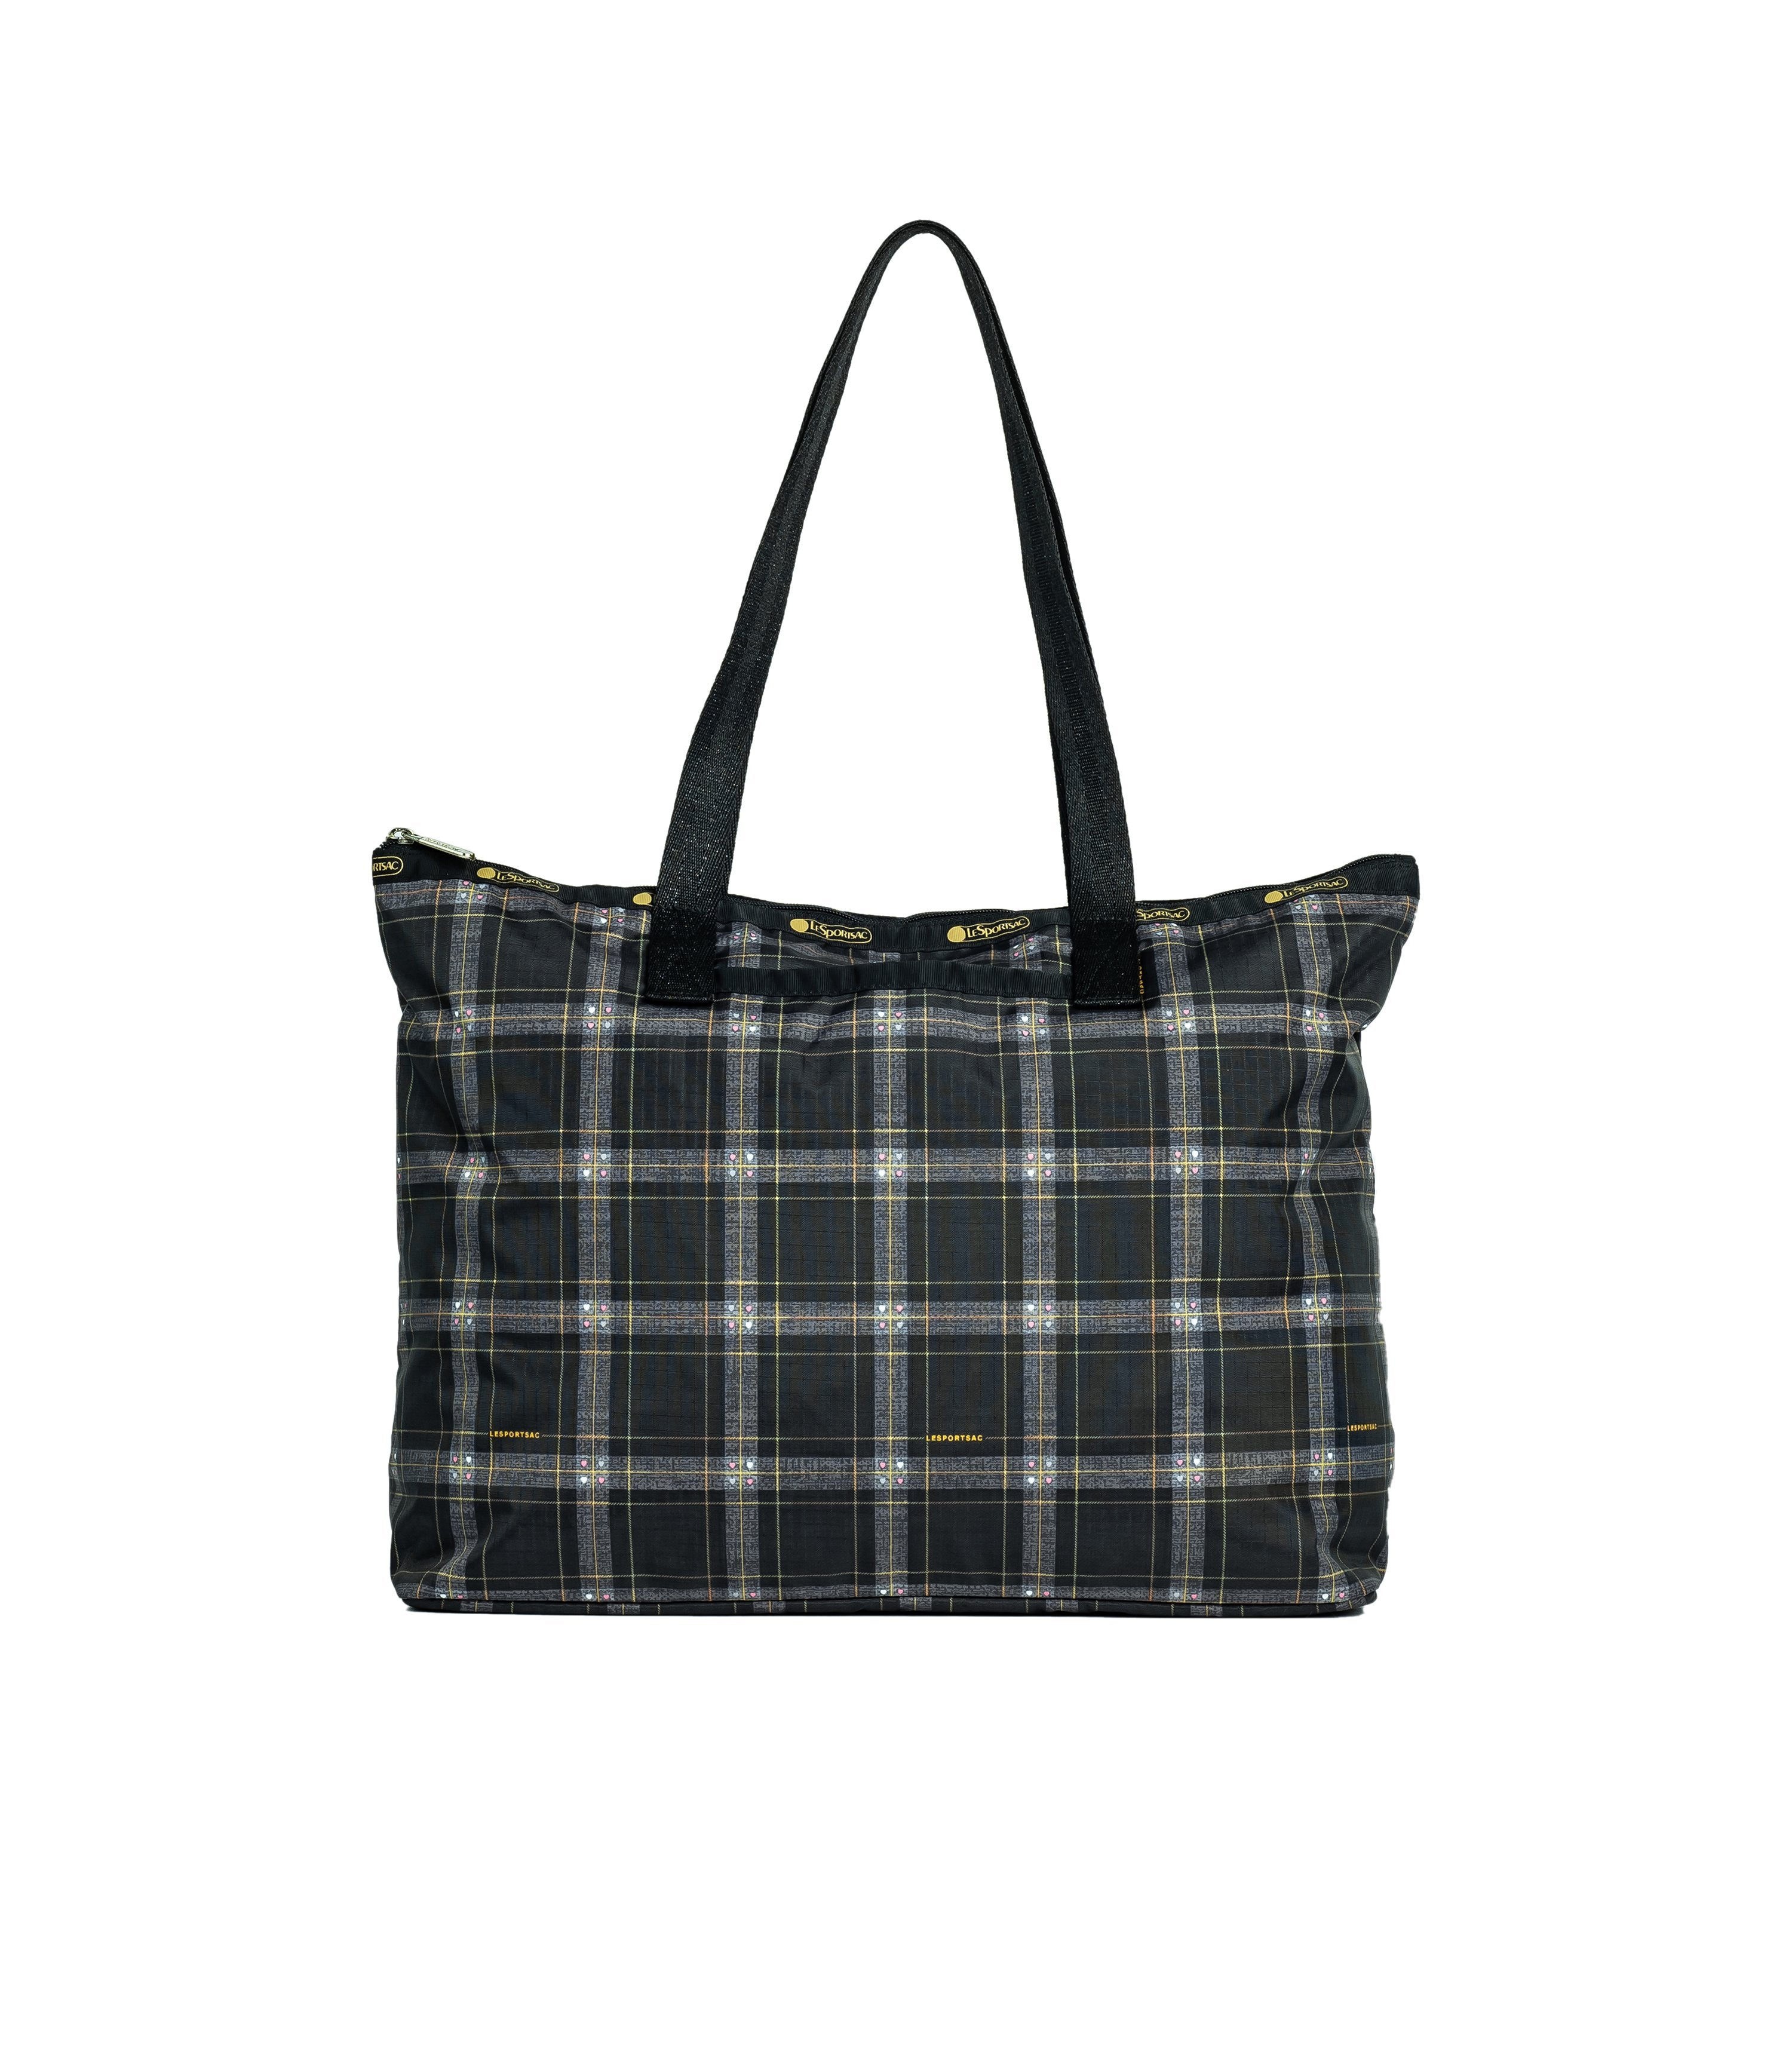 LeSportsac - Totes - Basic East/West Tote - Sweet Plaid Noir print